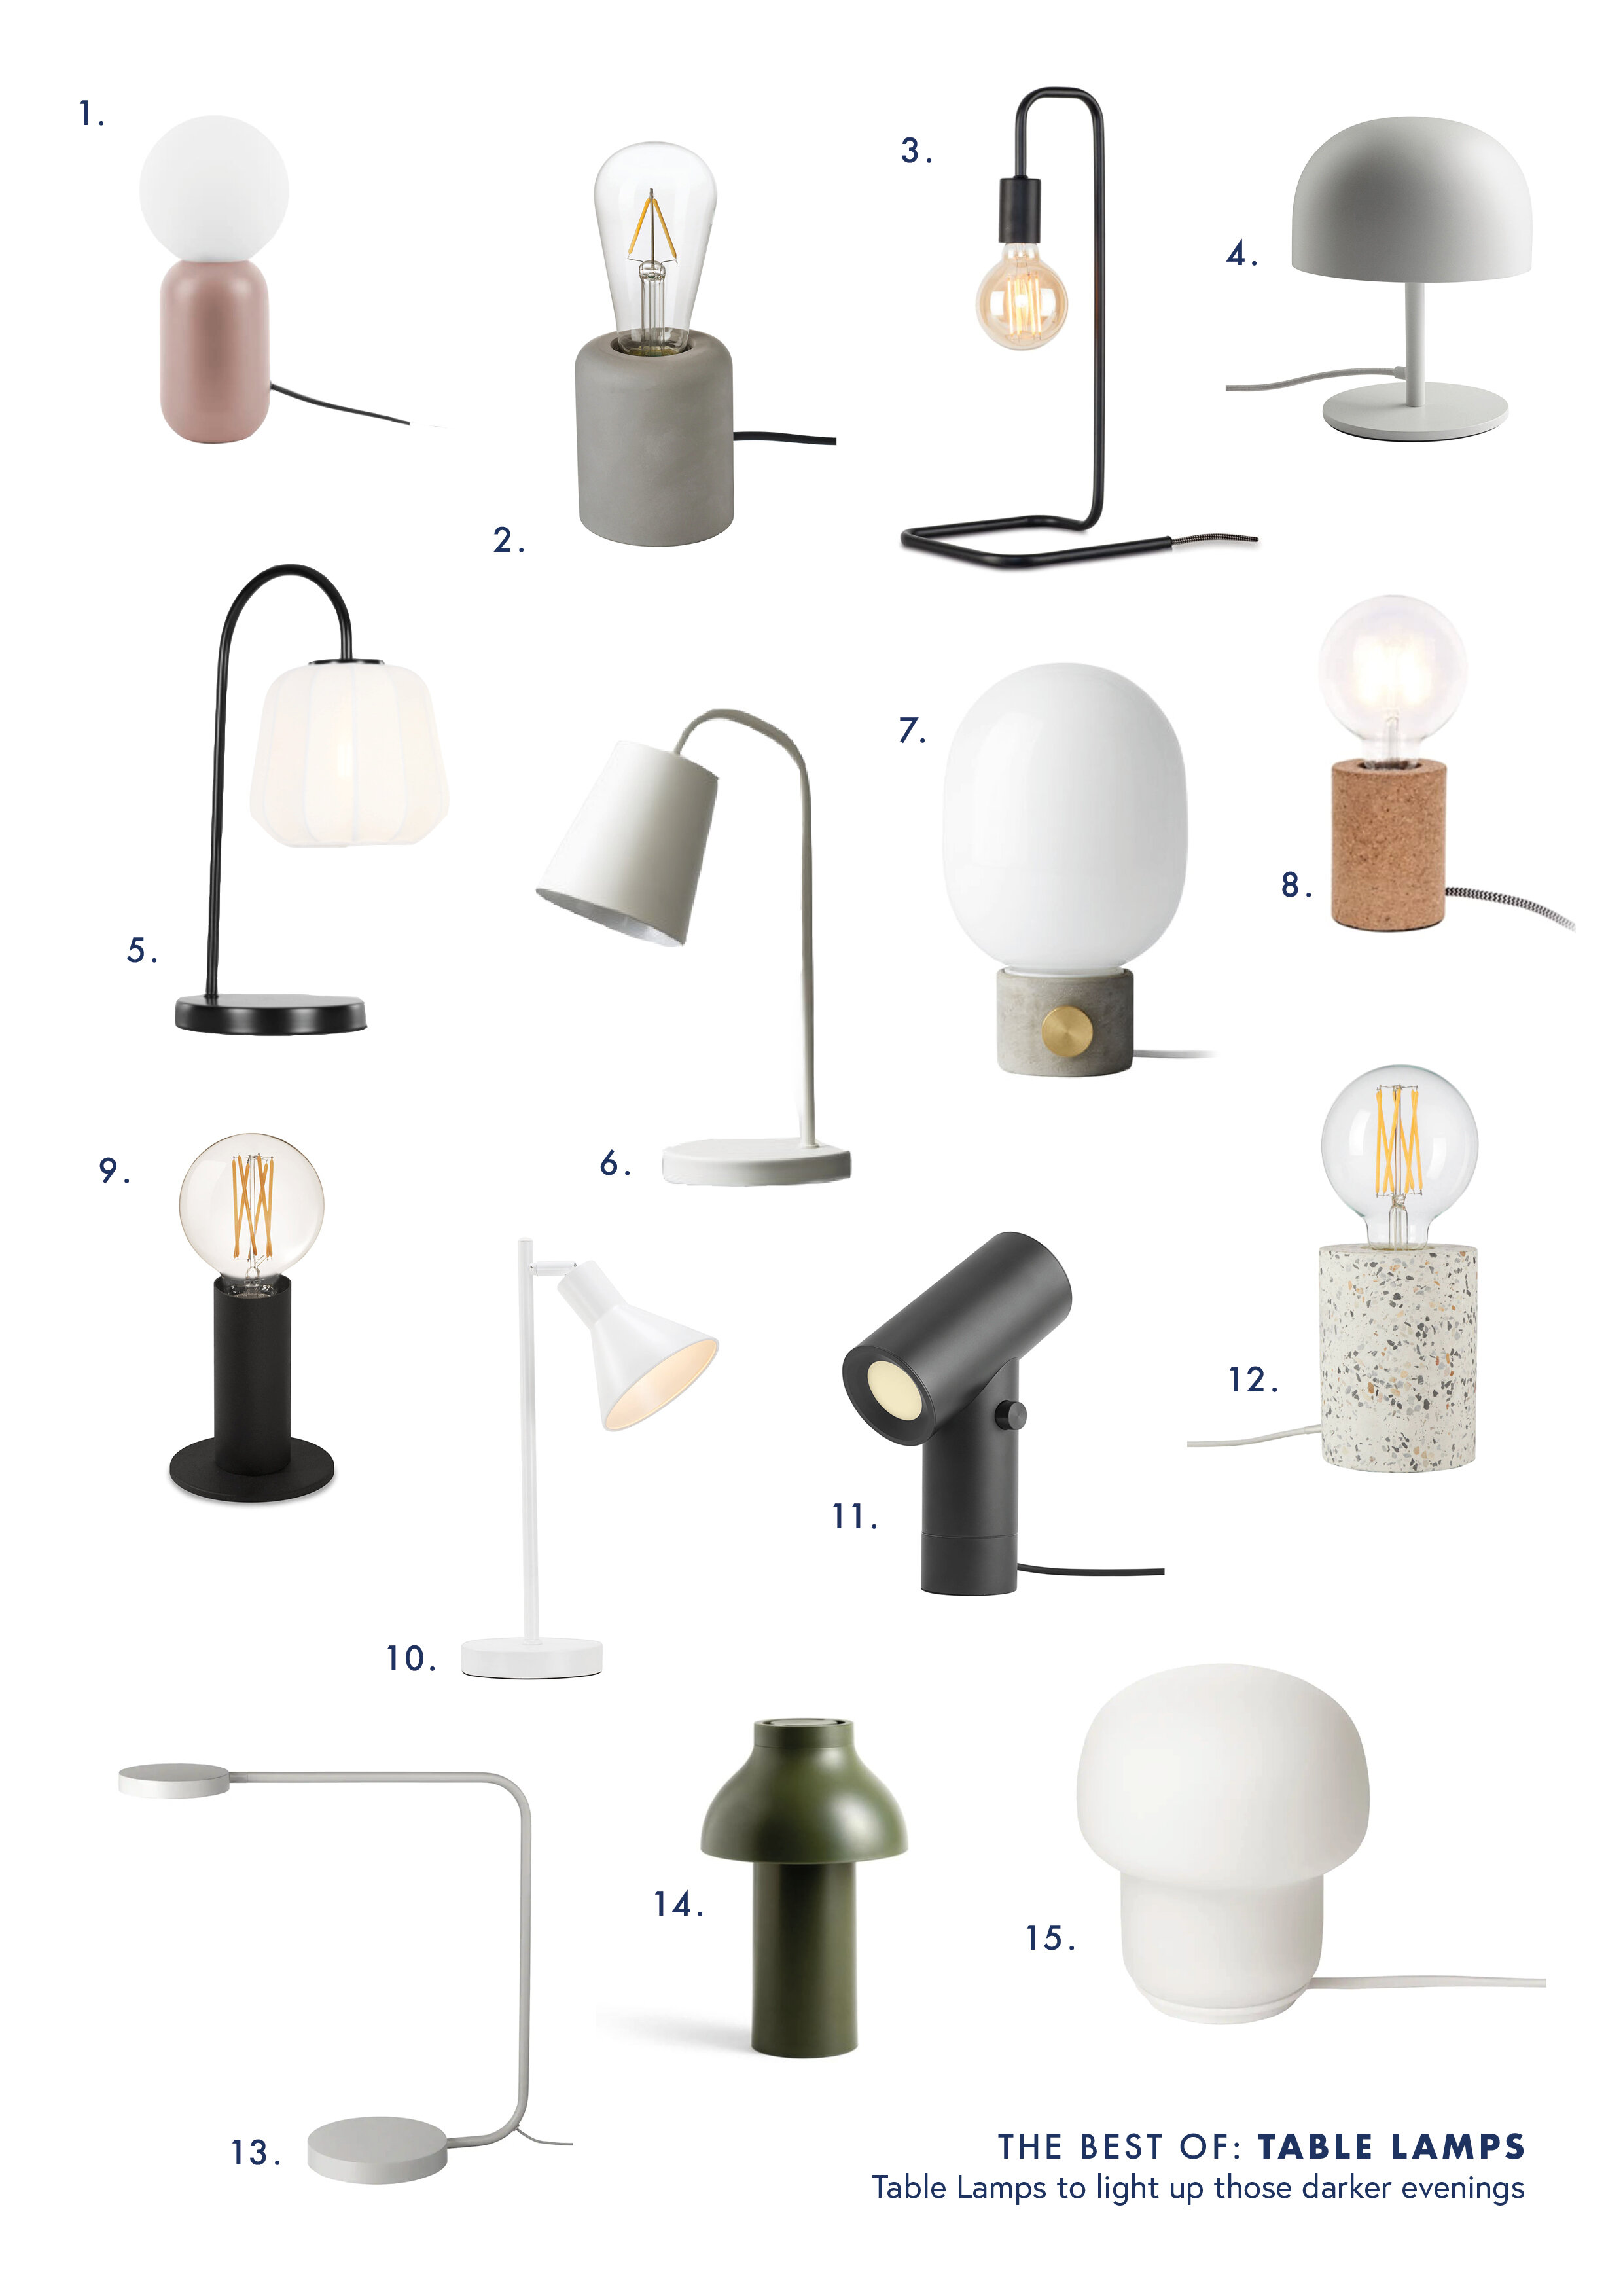 Table Lamps Layout.jpg